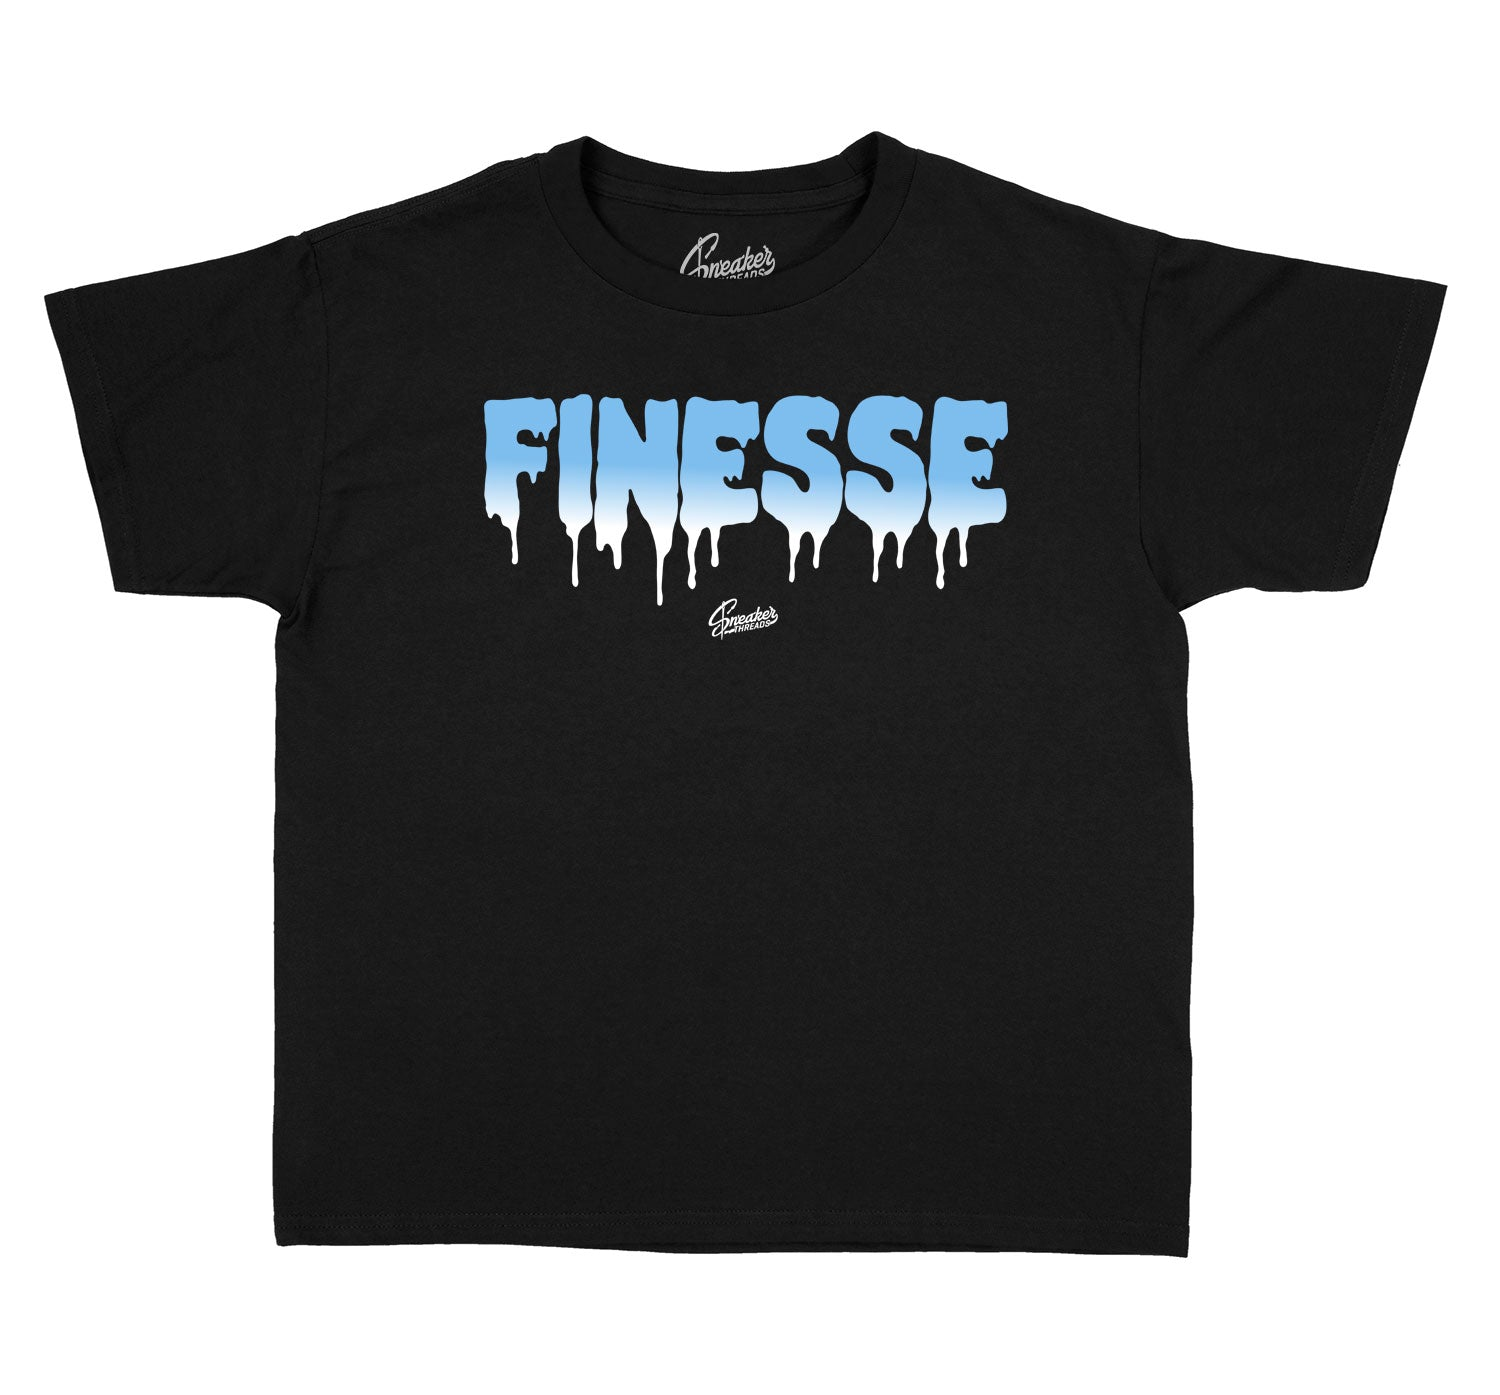 Kids - University Blue 1 Finesse Shirt